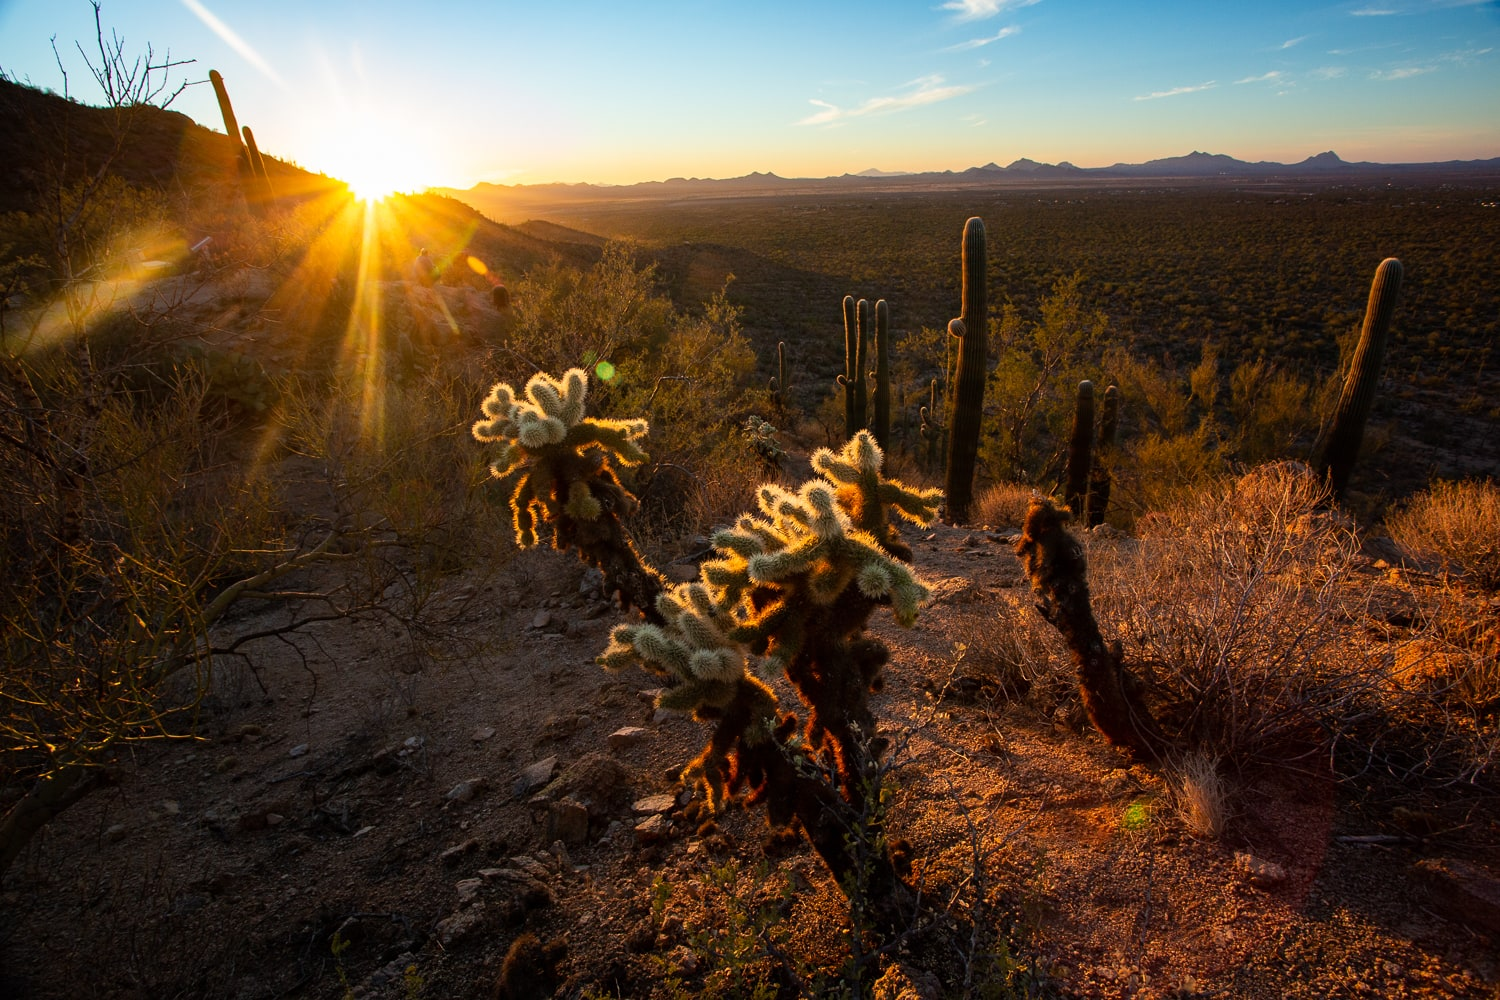 A cholla cactus in Saguaro National Park at sunset